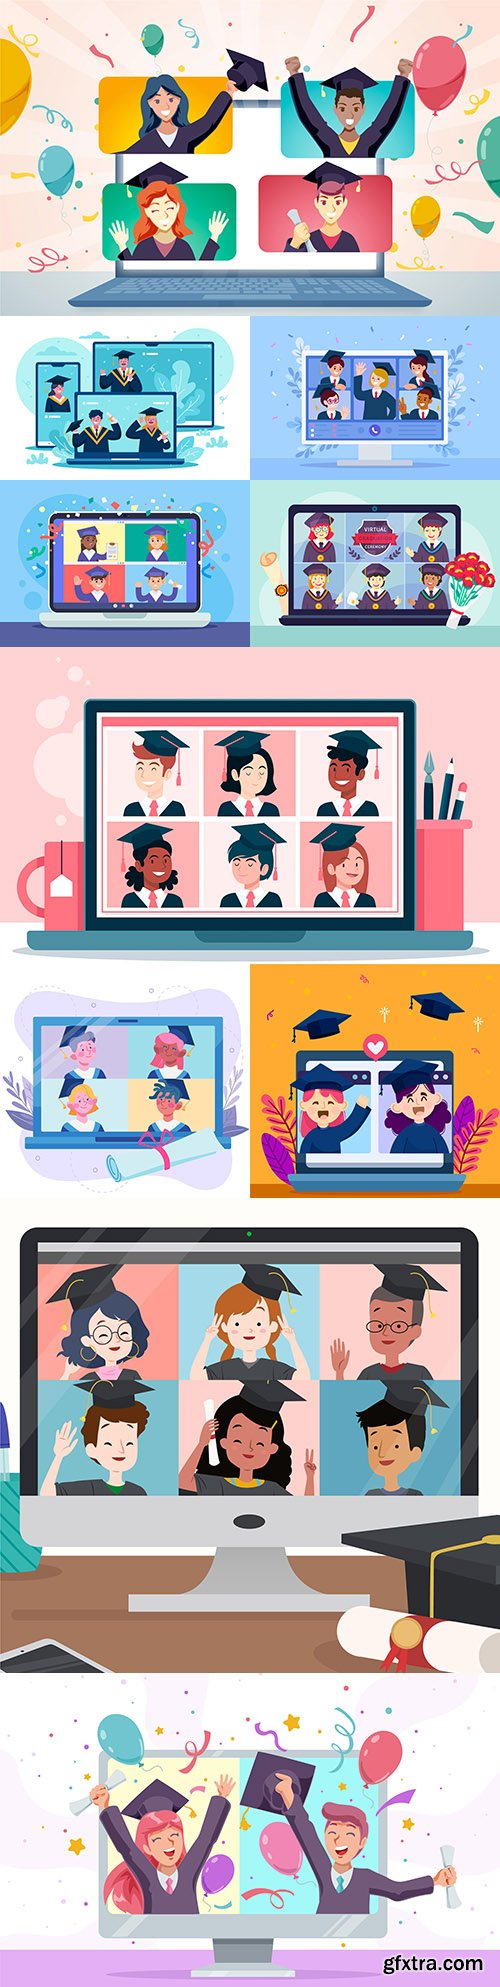 Virtual graduation award ceremony concept illustrations